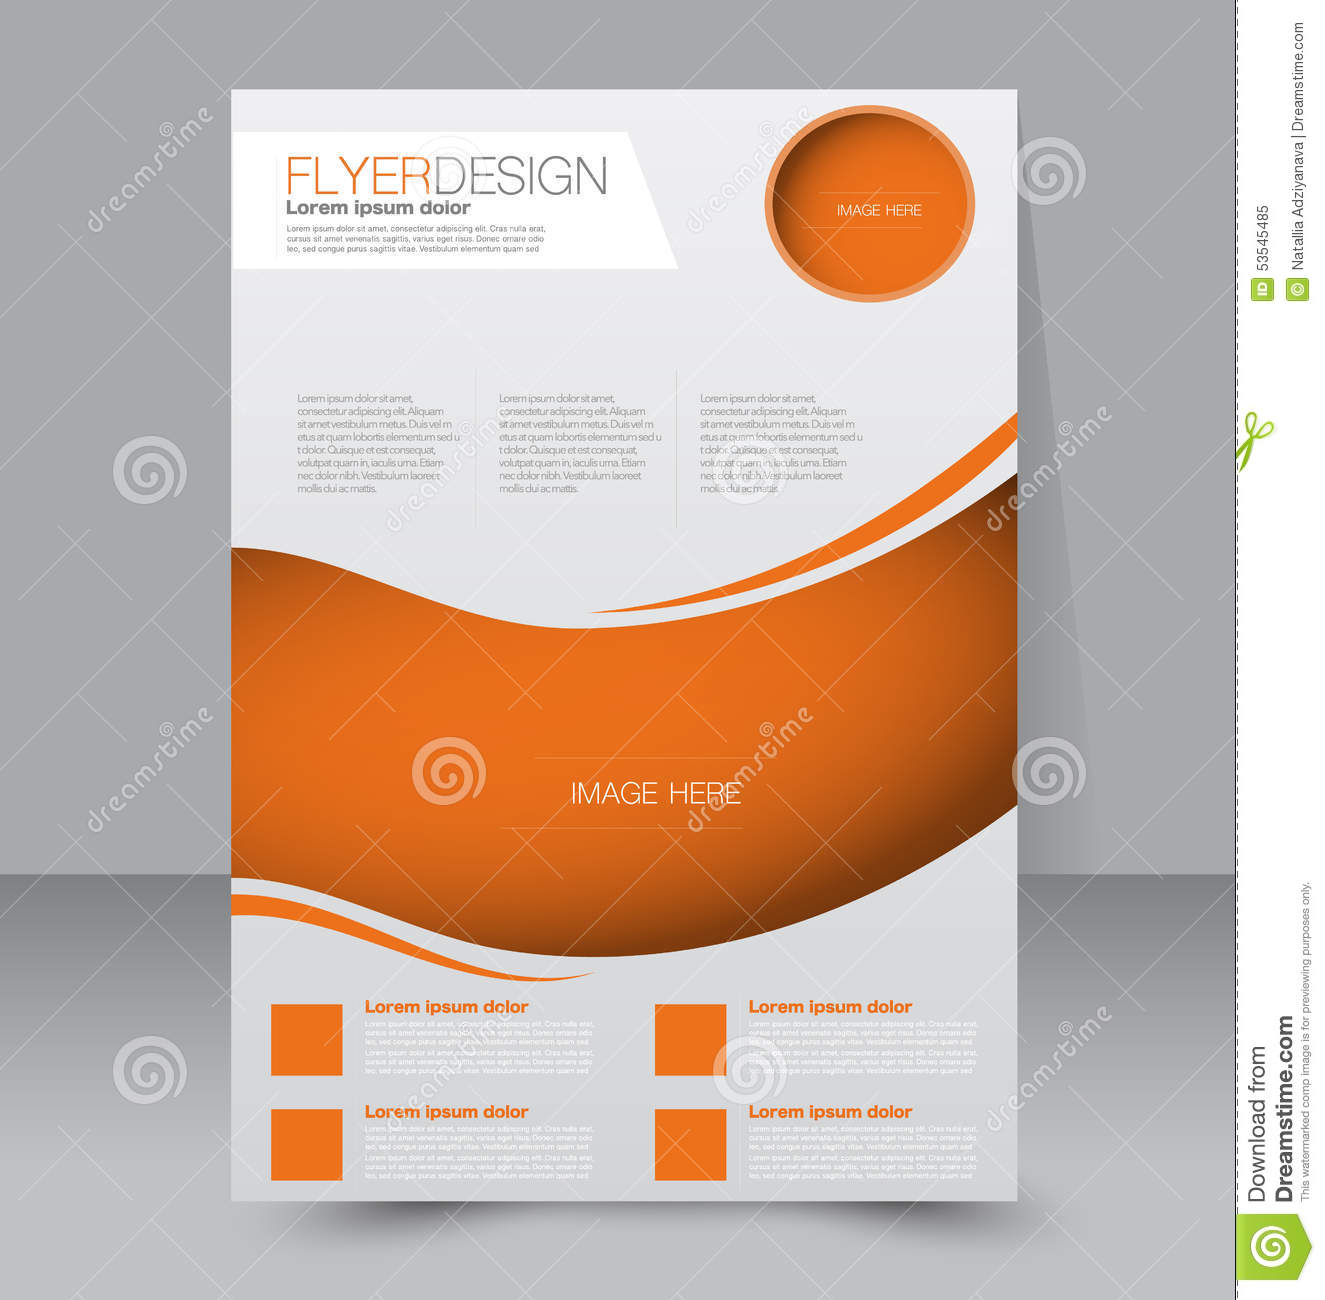 pages brochure templates - flyer template business brochure editable a4 poster